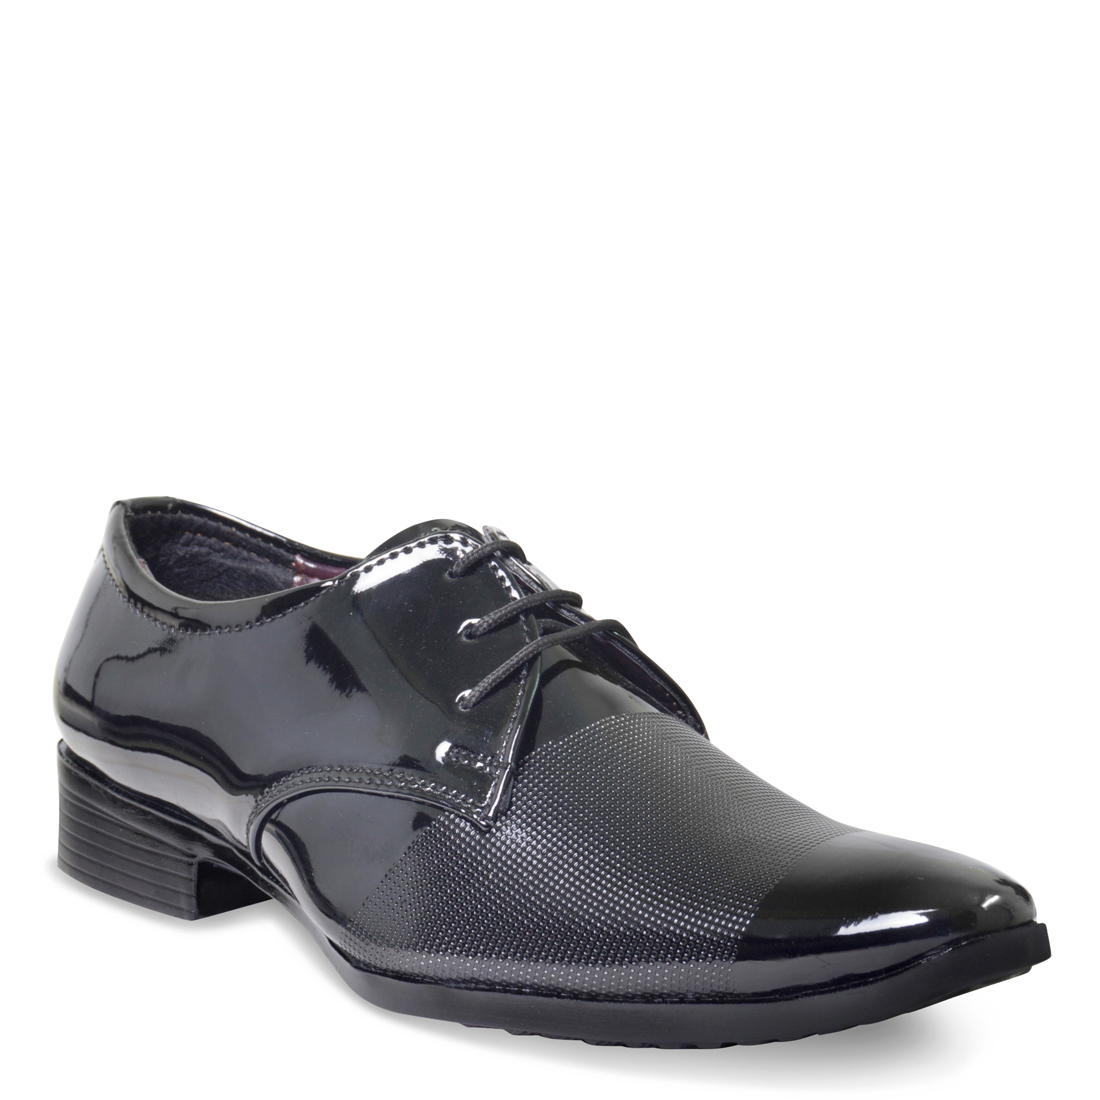 Where To Buy Oxford Shoes In Paris